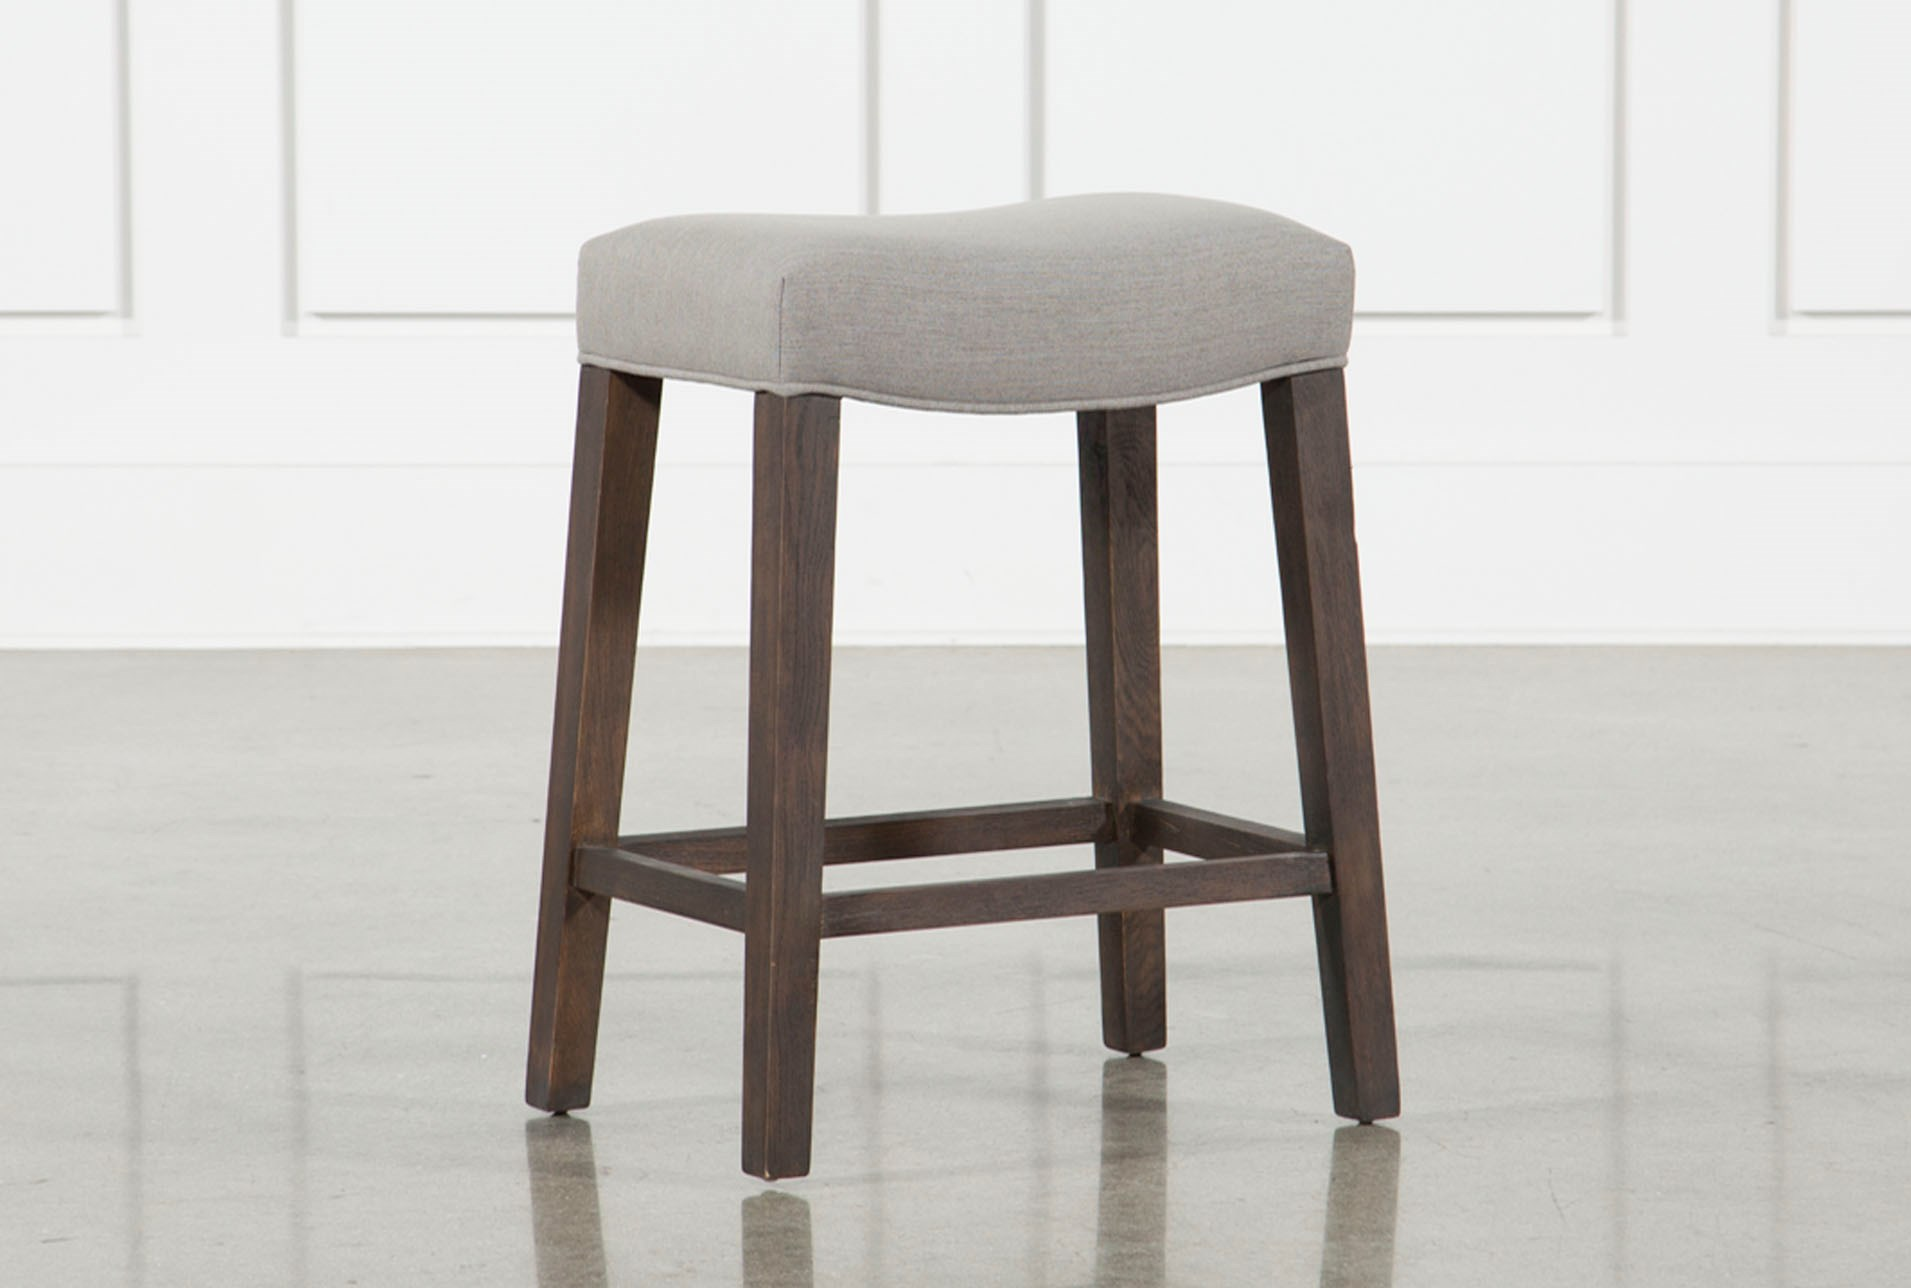 Tremendous Cheswick Mineral 26 Inch Counter Stool Caraccident5 Cool Chair Designs And Ideas Caraccident5Info